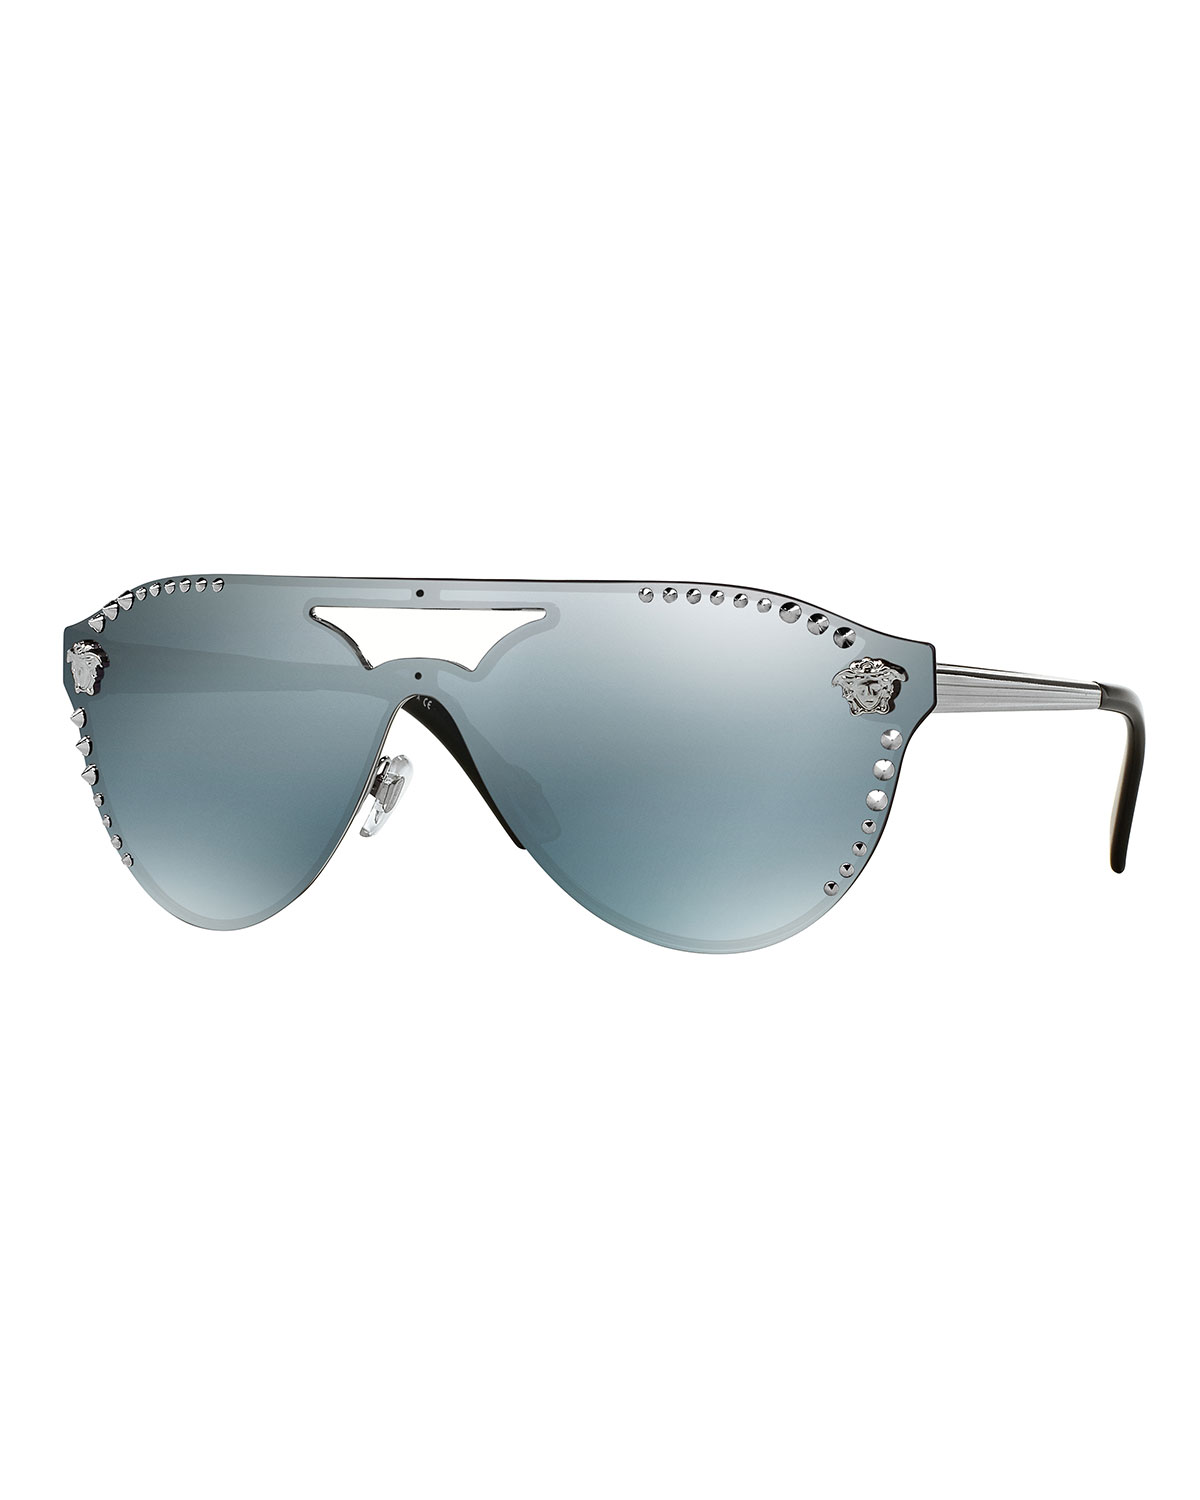 VERSACE MEN'S MIRRORED METAL-STUDDED SHIELD SUNGLASSES